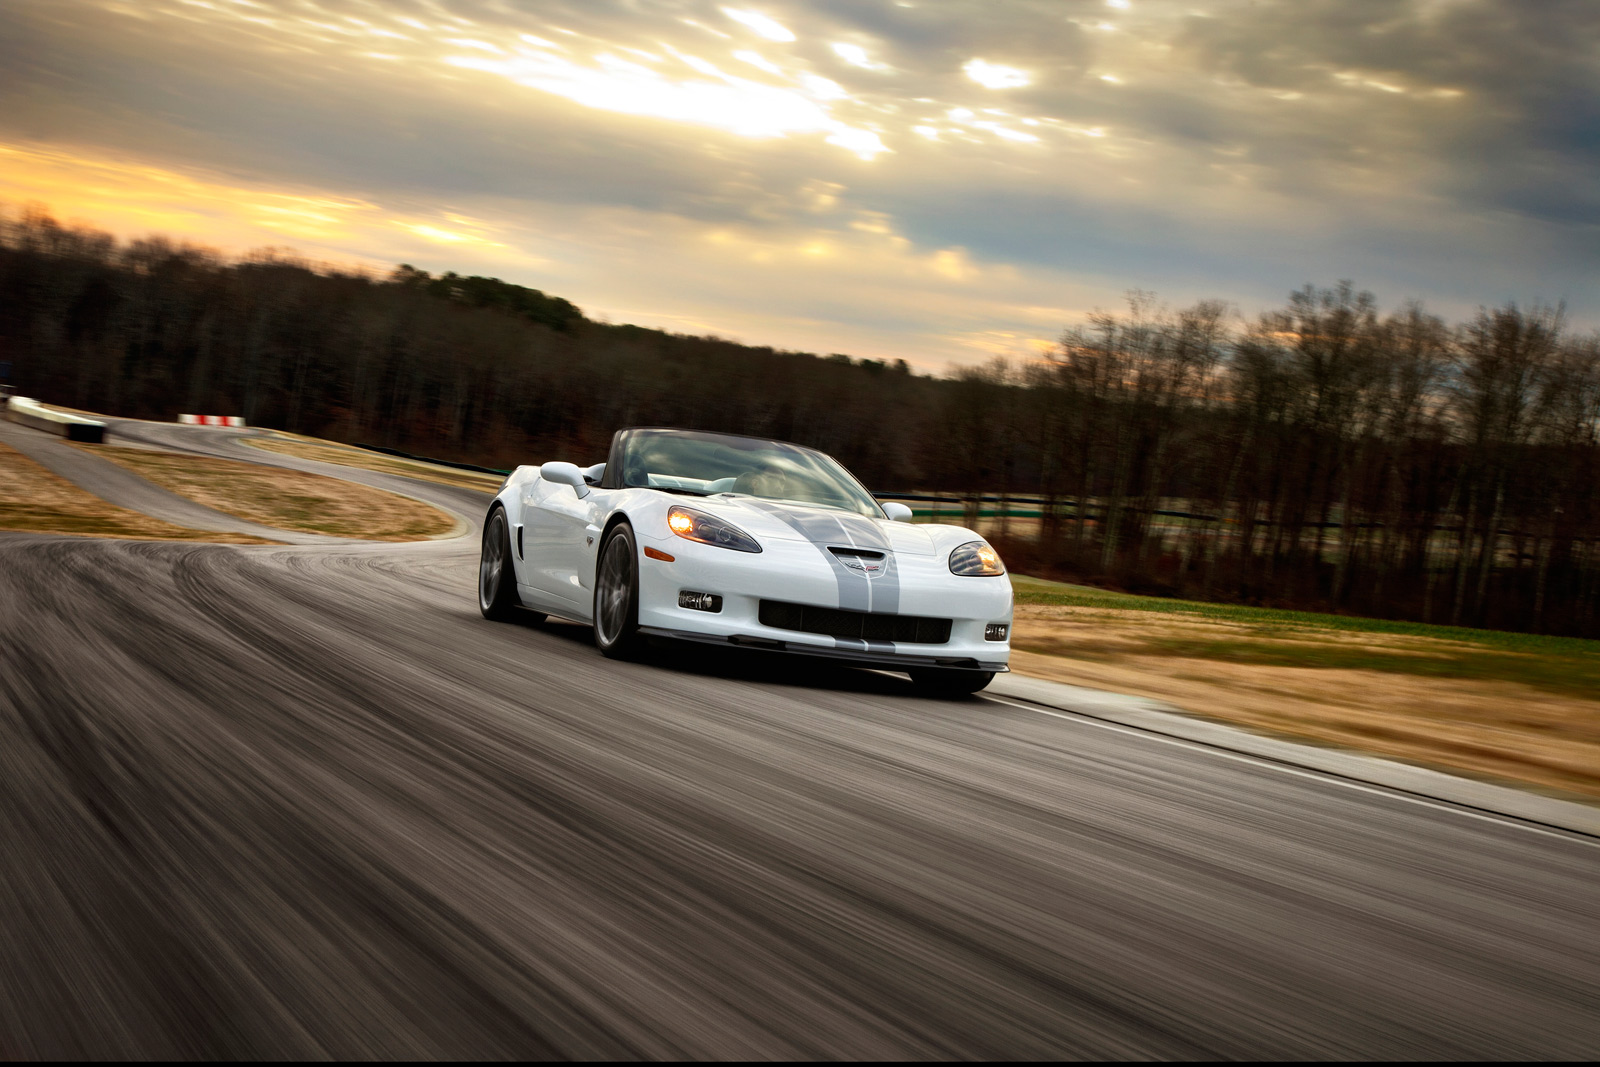 Engine Repair Shops >> Chevy sending off C6 Corvette with 427 Convertible and 60th Anniversary package | Autoblog